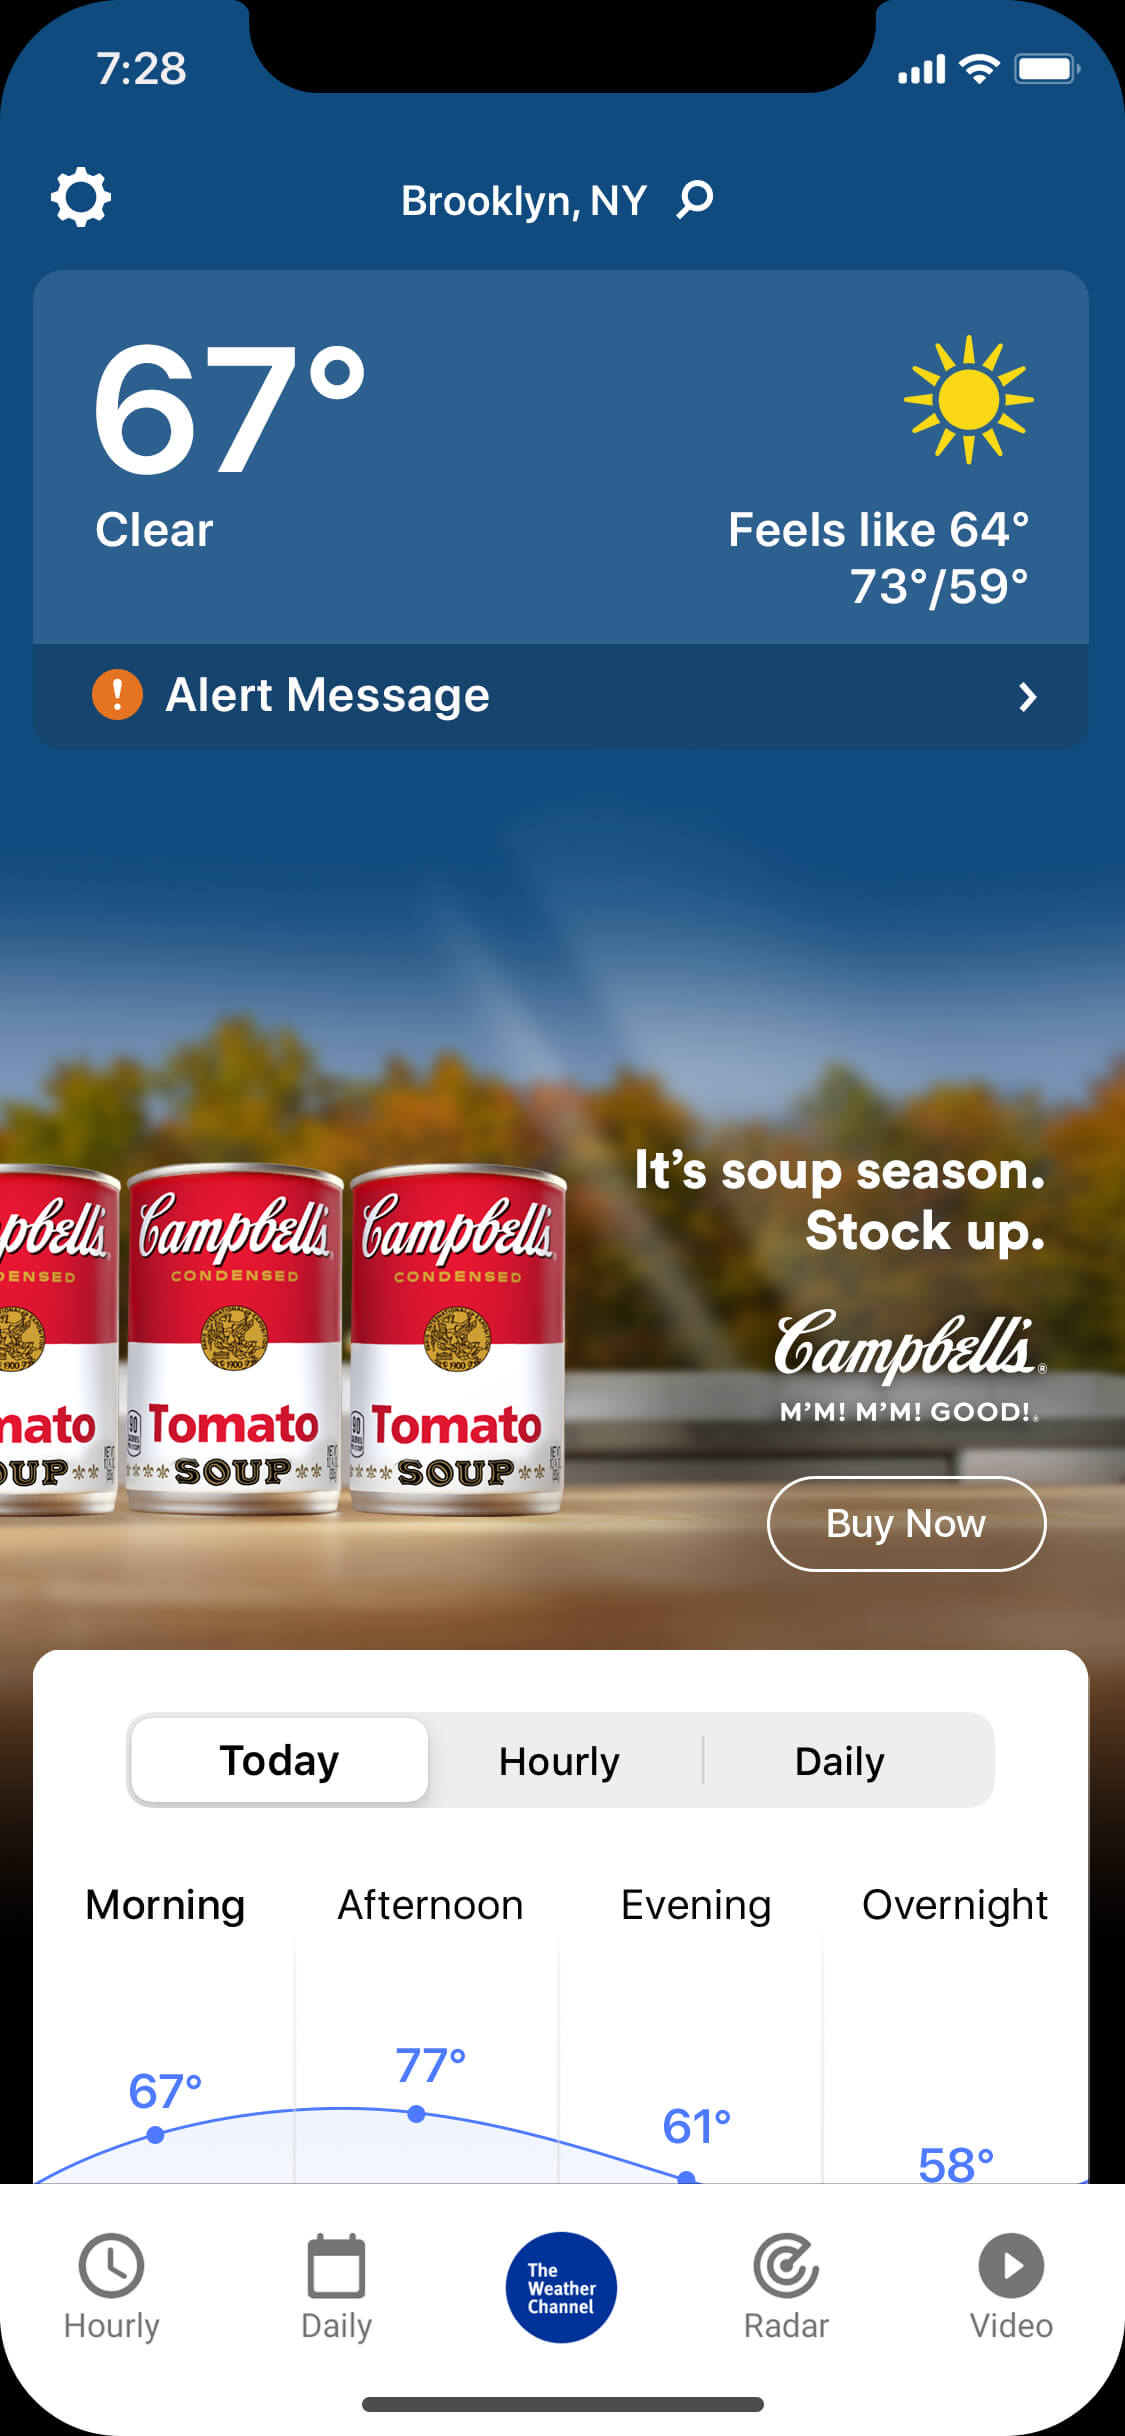 campbells-stockup_clear-day